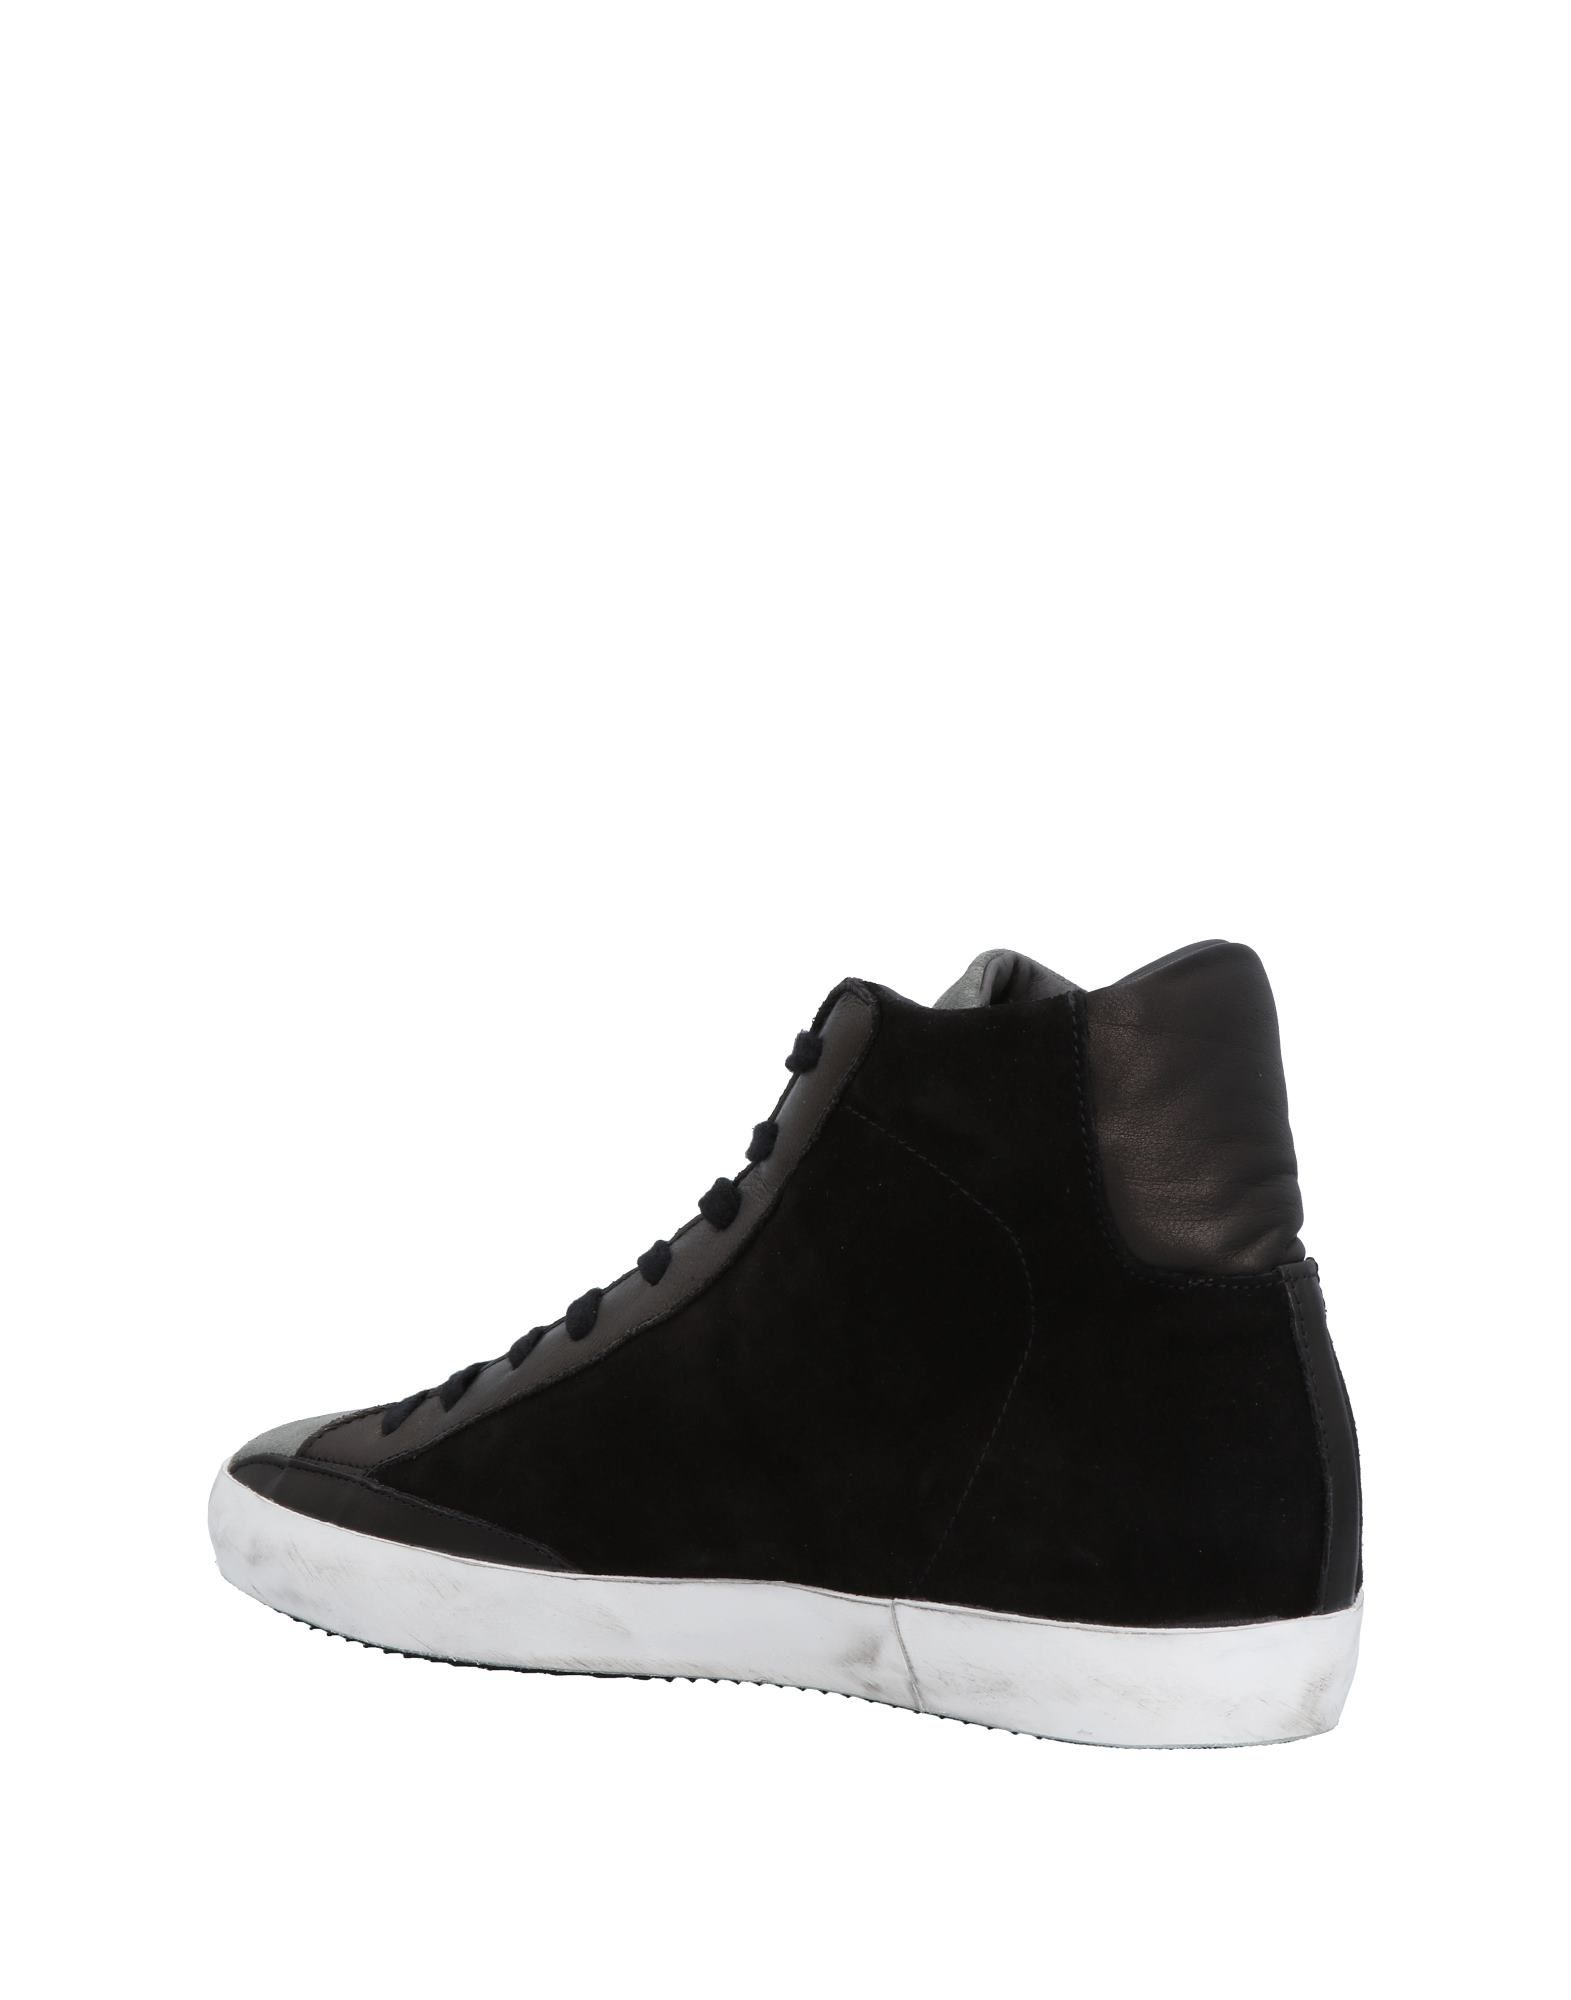 Philippe Model Sneakers Herren  11487944JH 11487944JH 11487944JH 1a7dfb